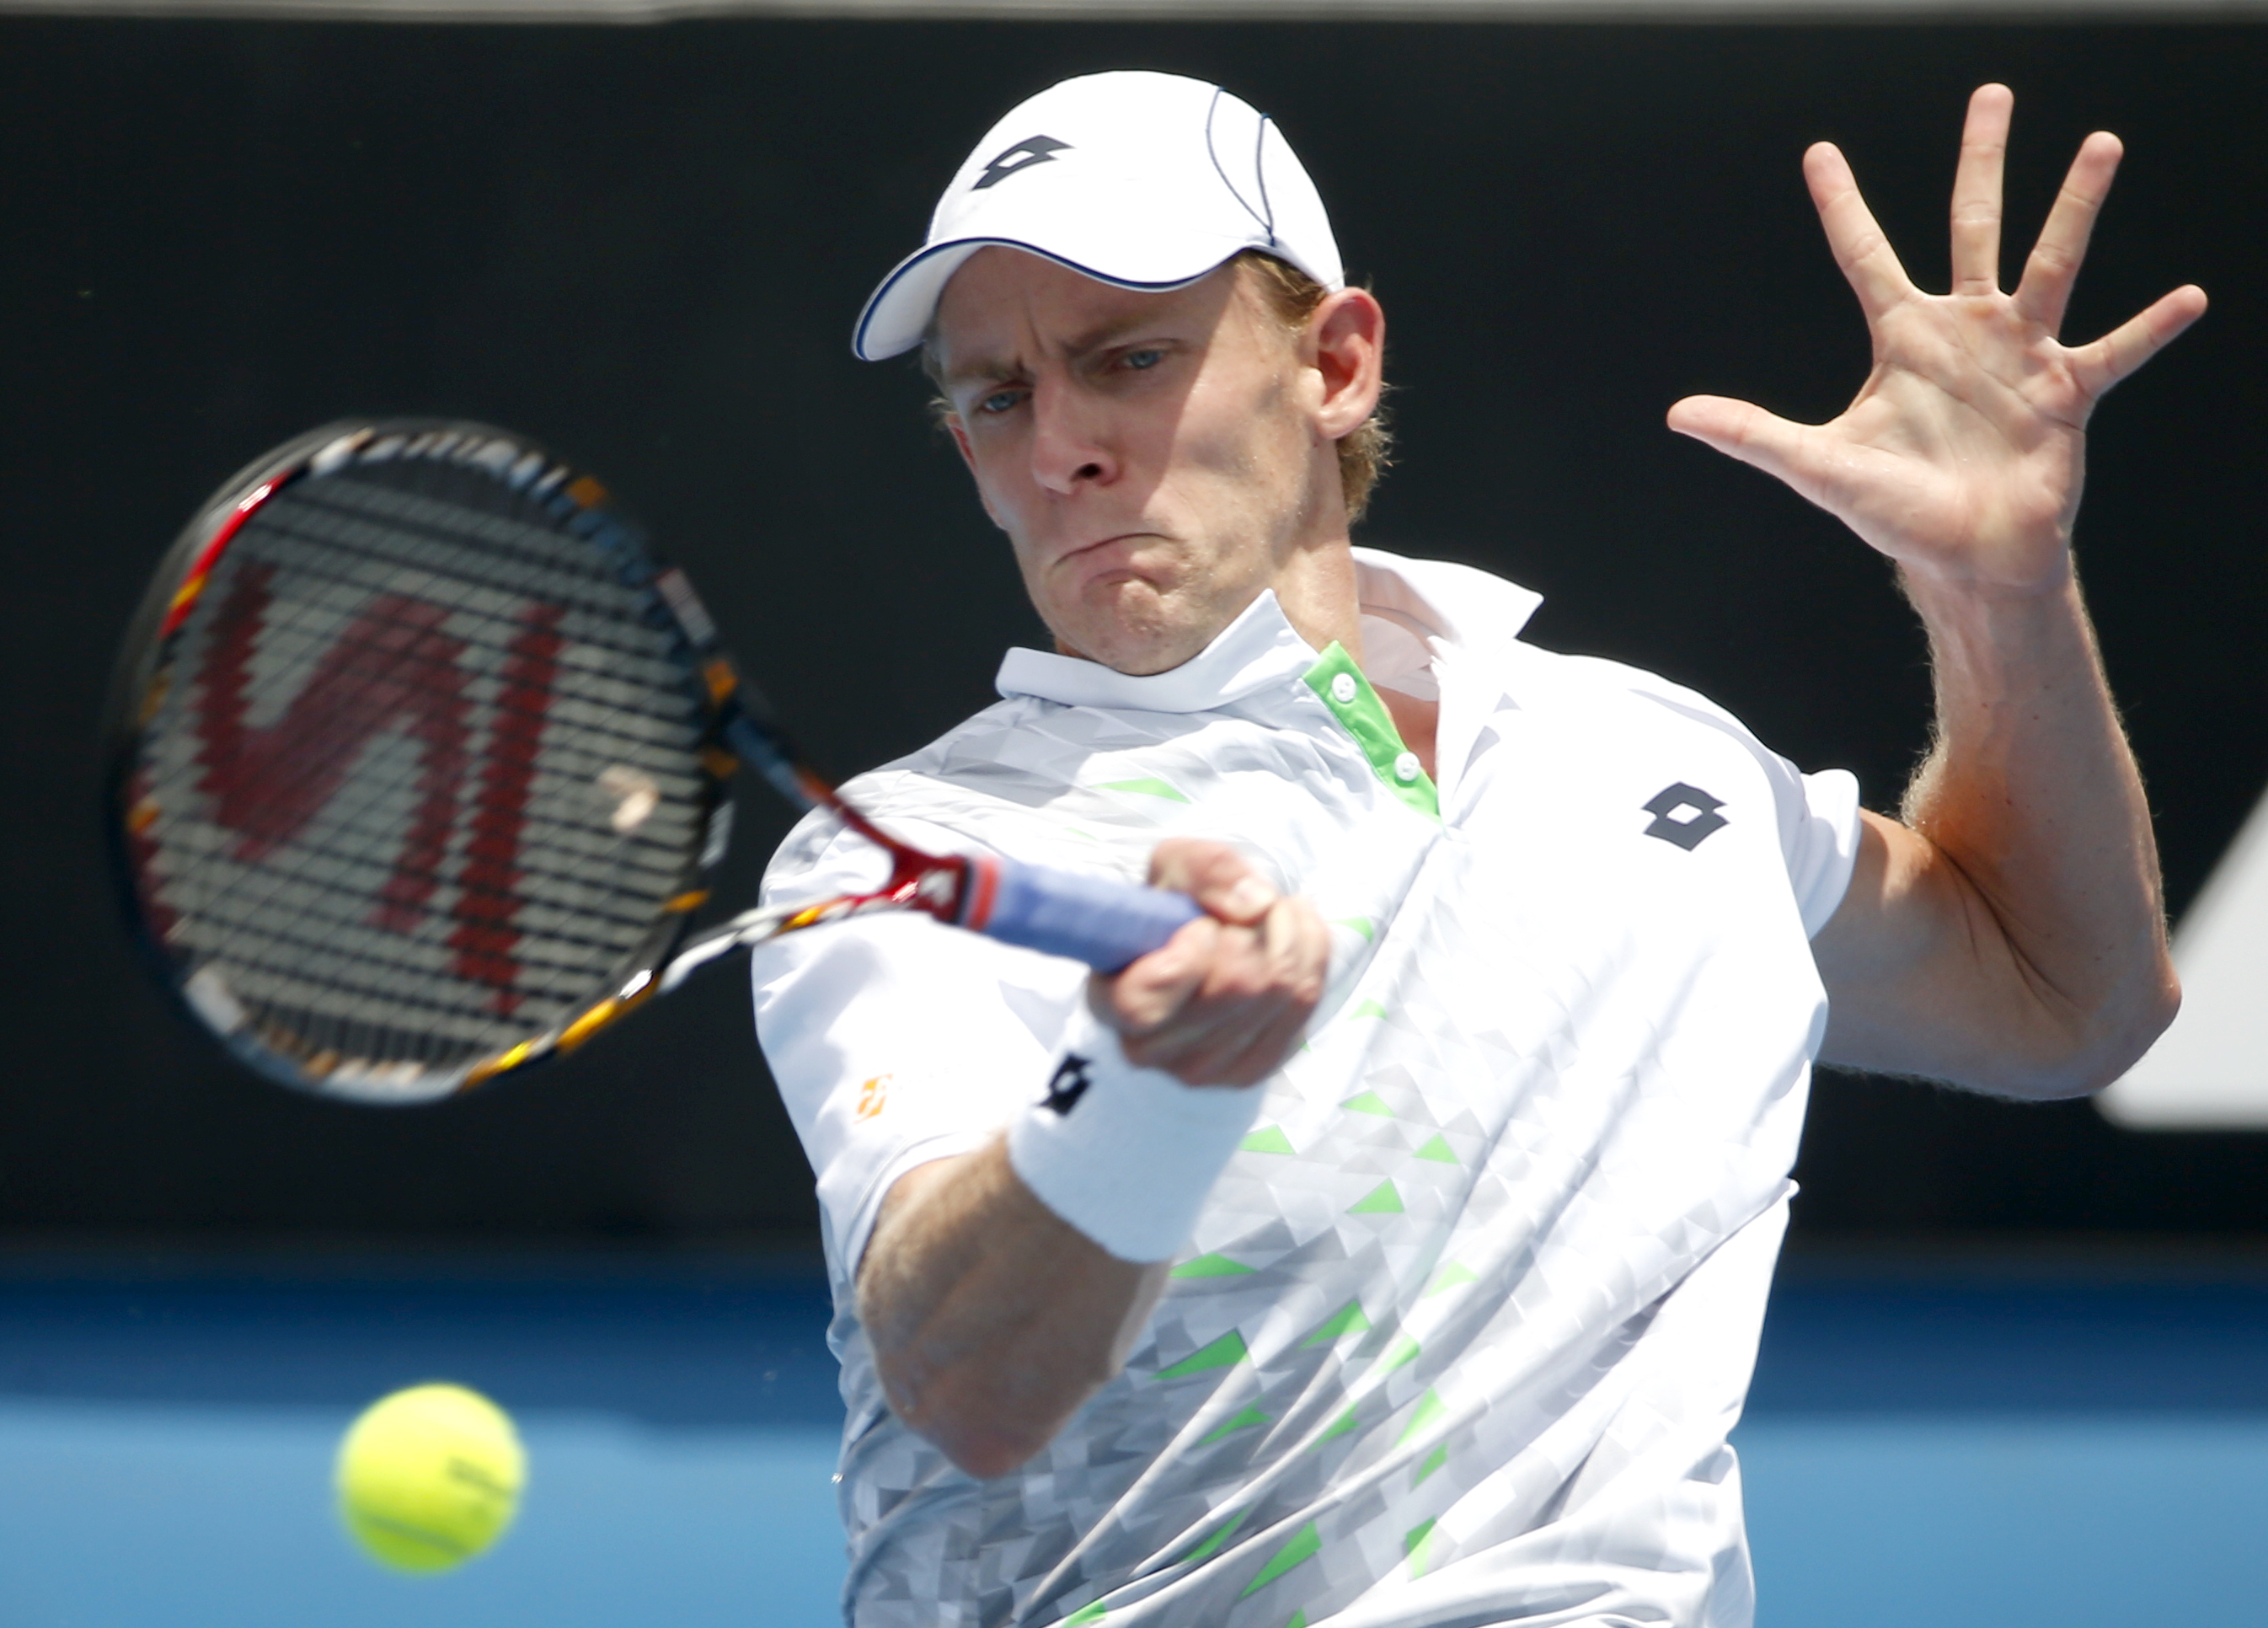 Kevin Anderson of South Africa makes a forehand return to Rajeev Ram of the United States  during their first round match at the Australian Open tennis championships in Melbourne, Australia, Tuesday, Jan. 19, 2016.(AP Photo/Vincent Thian)